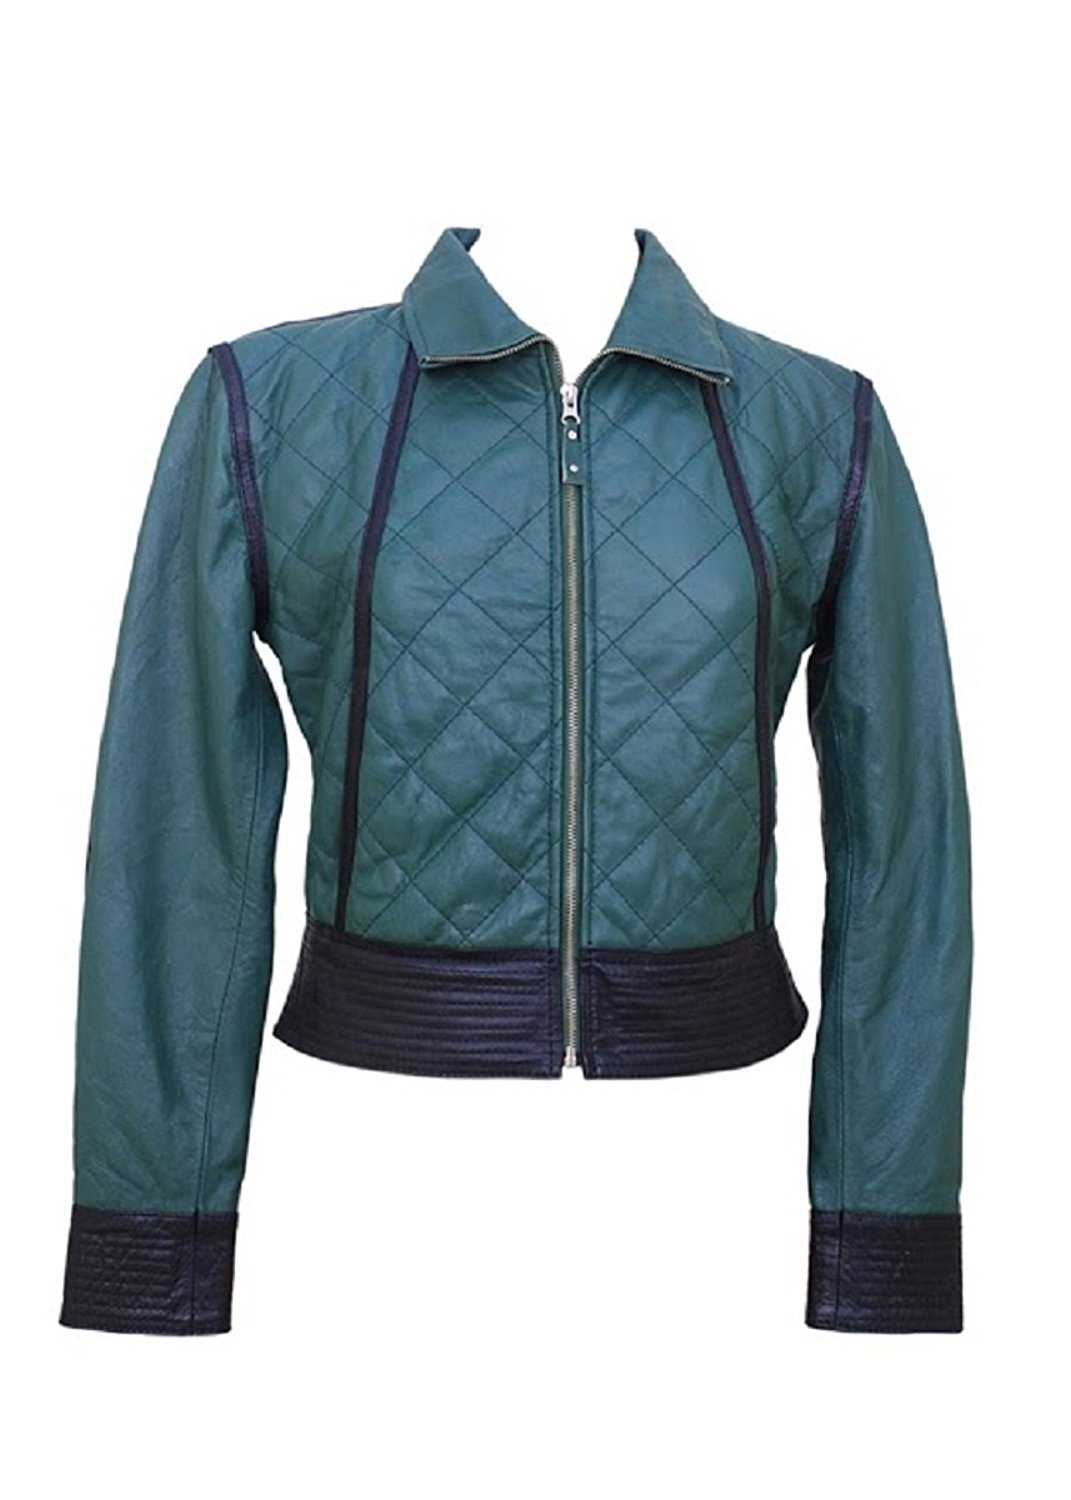 Bestzo Women's Fashion Jacket Lamb Leather Blue XL